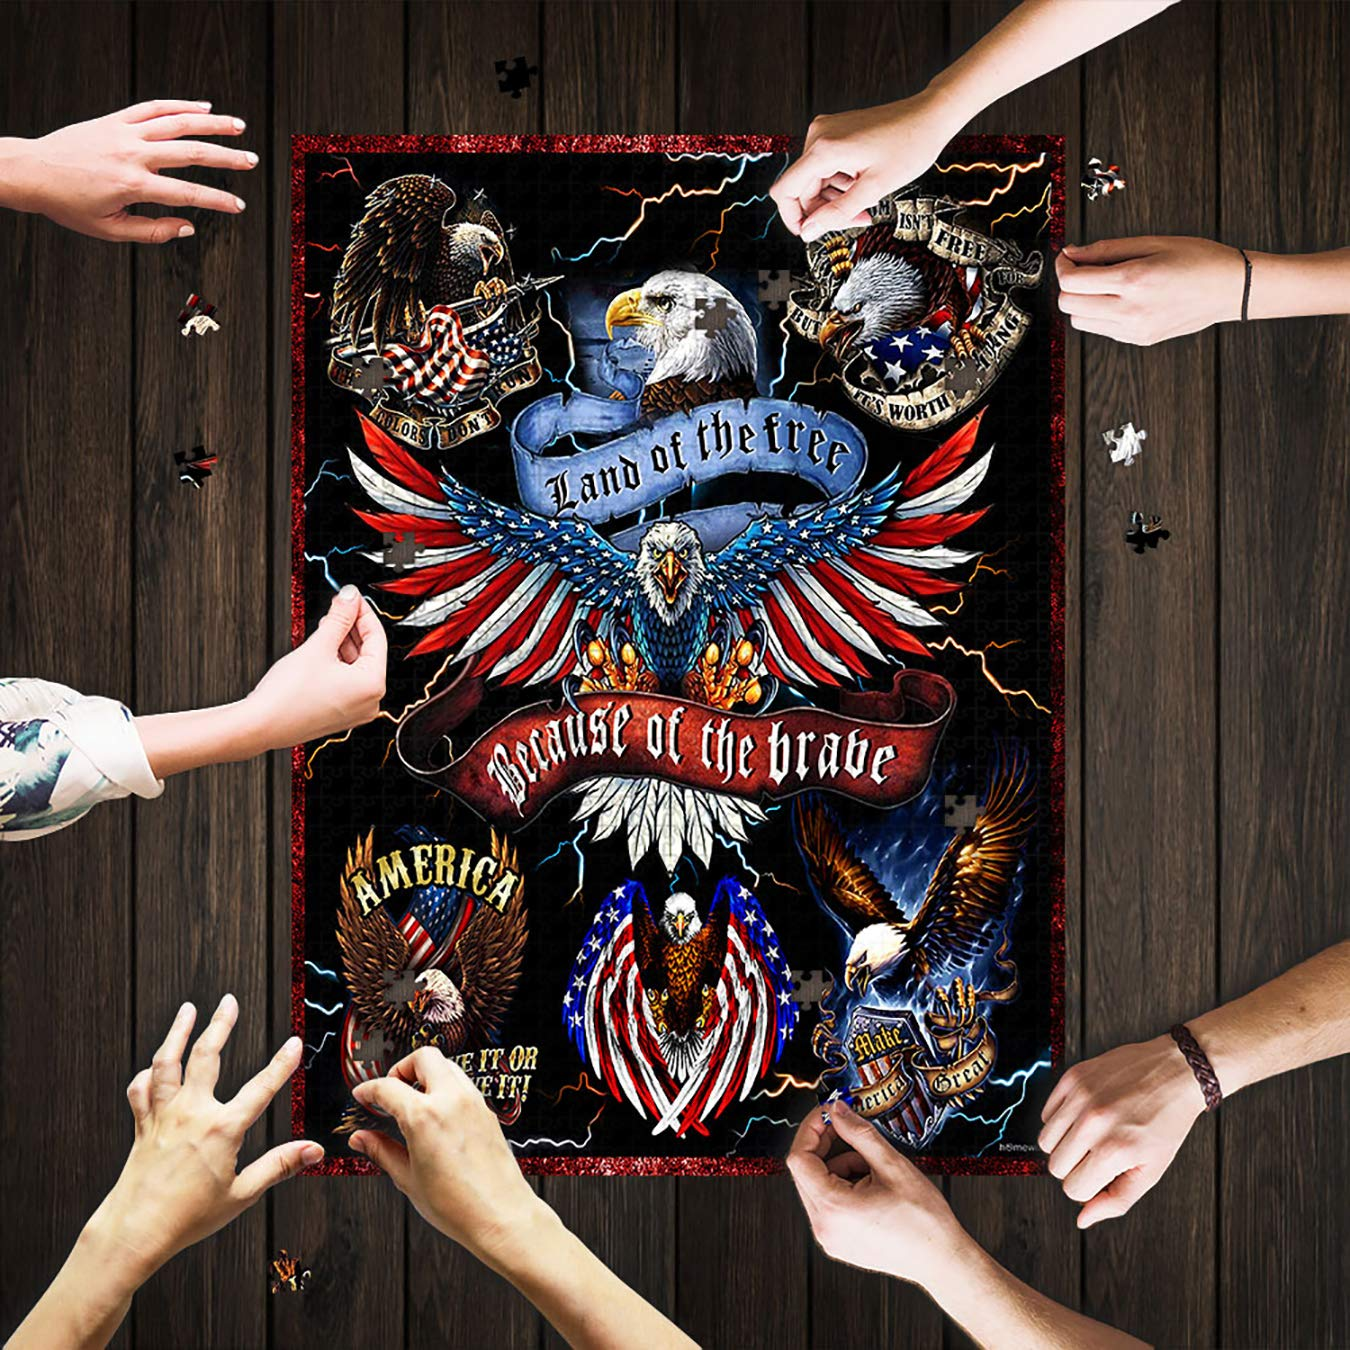 Adult Puzzles American Eagle Land Of The Free Because Of The Brave Jigsaw Puzzle 500 Pieces Games for Adults Children Funny Gifts Puzzle Mat Mod Podge